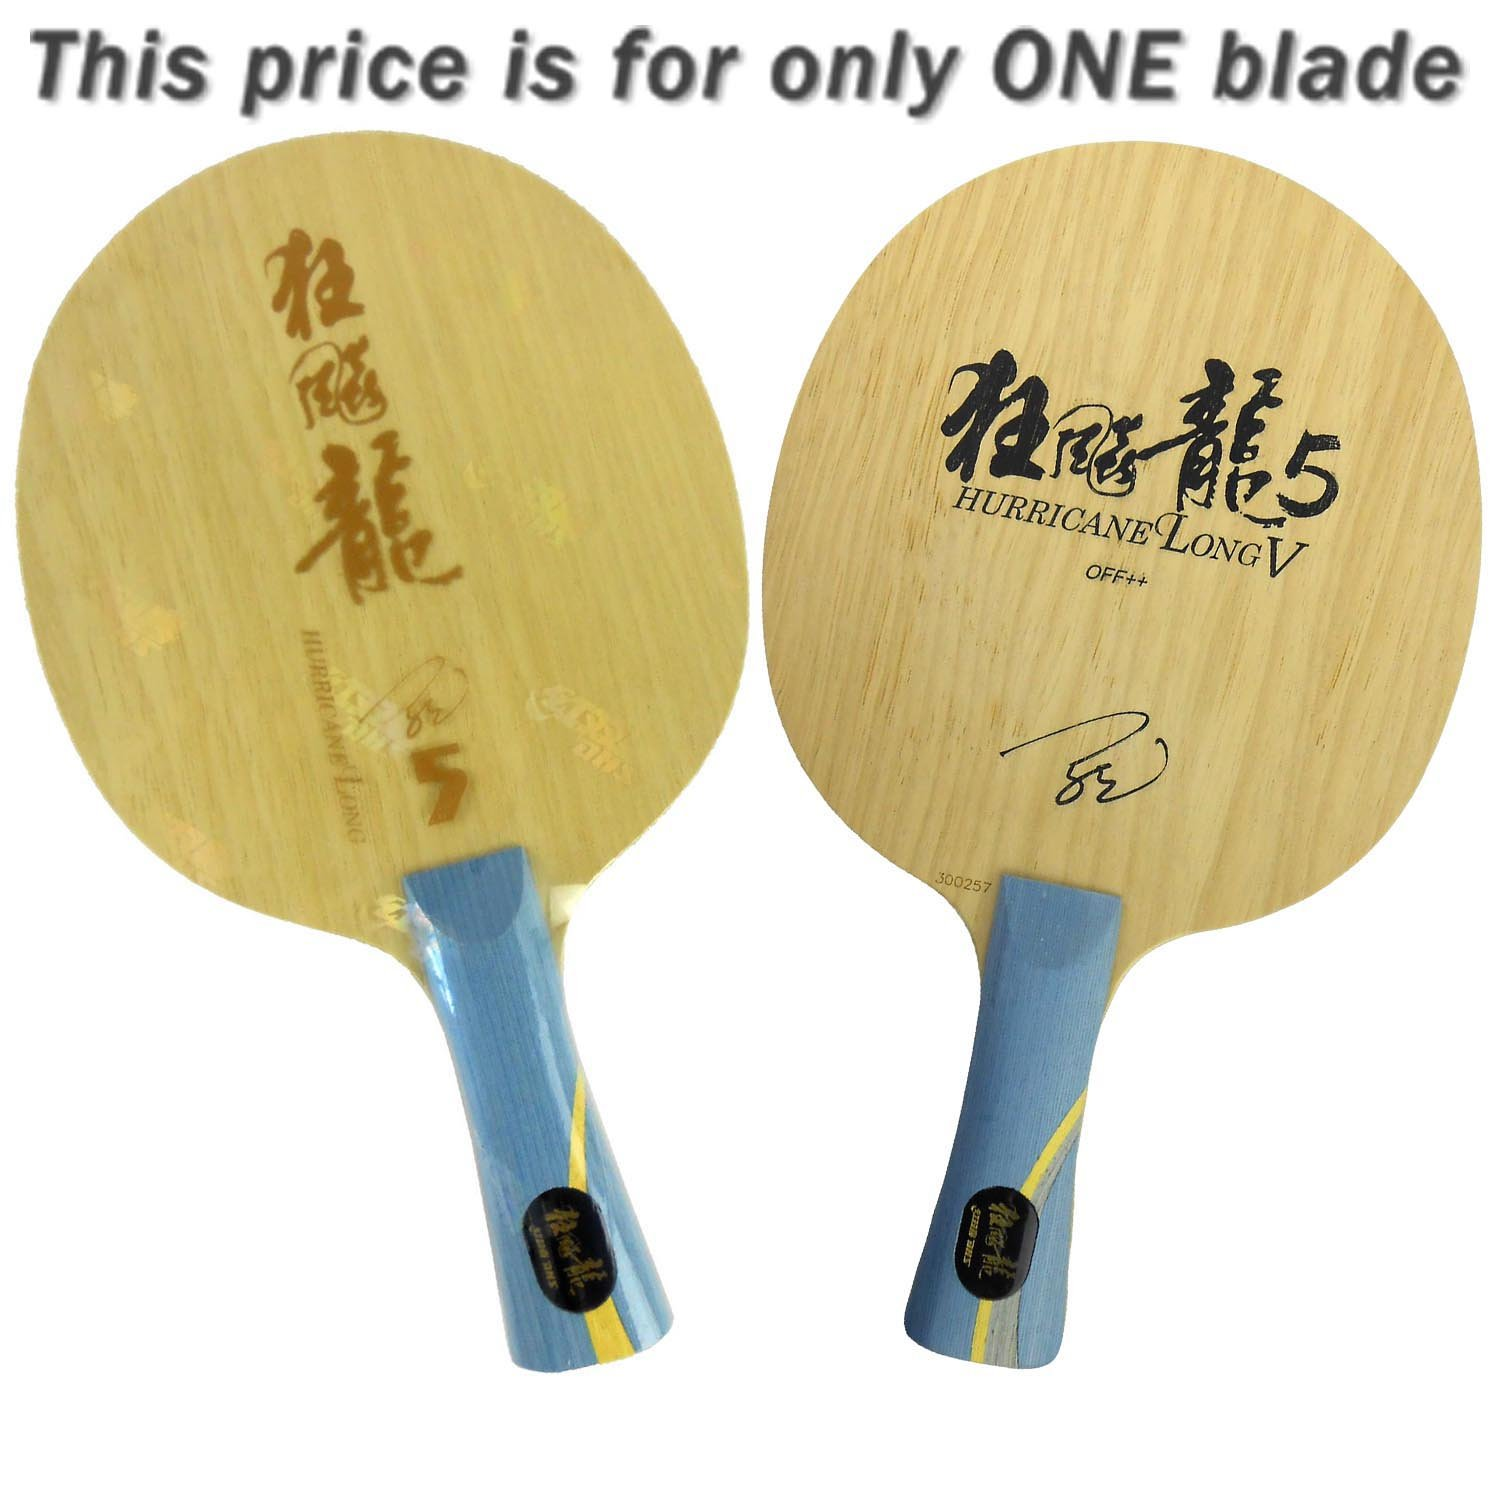 DHS Hurricane Long V (5 Wooden + 2 Arylate-Carbon) OFF++ Table Tennis Blade for Ping Pong Racket, Long(shakehand)-FL by DHS